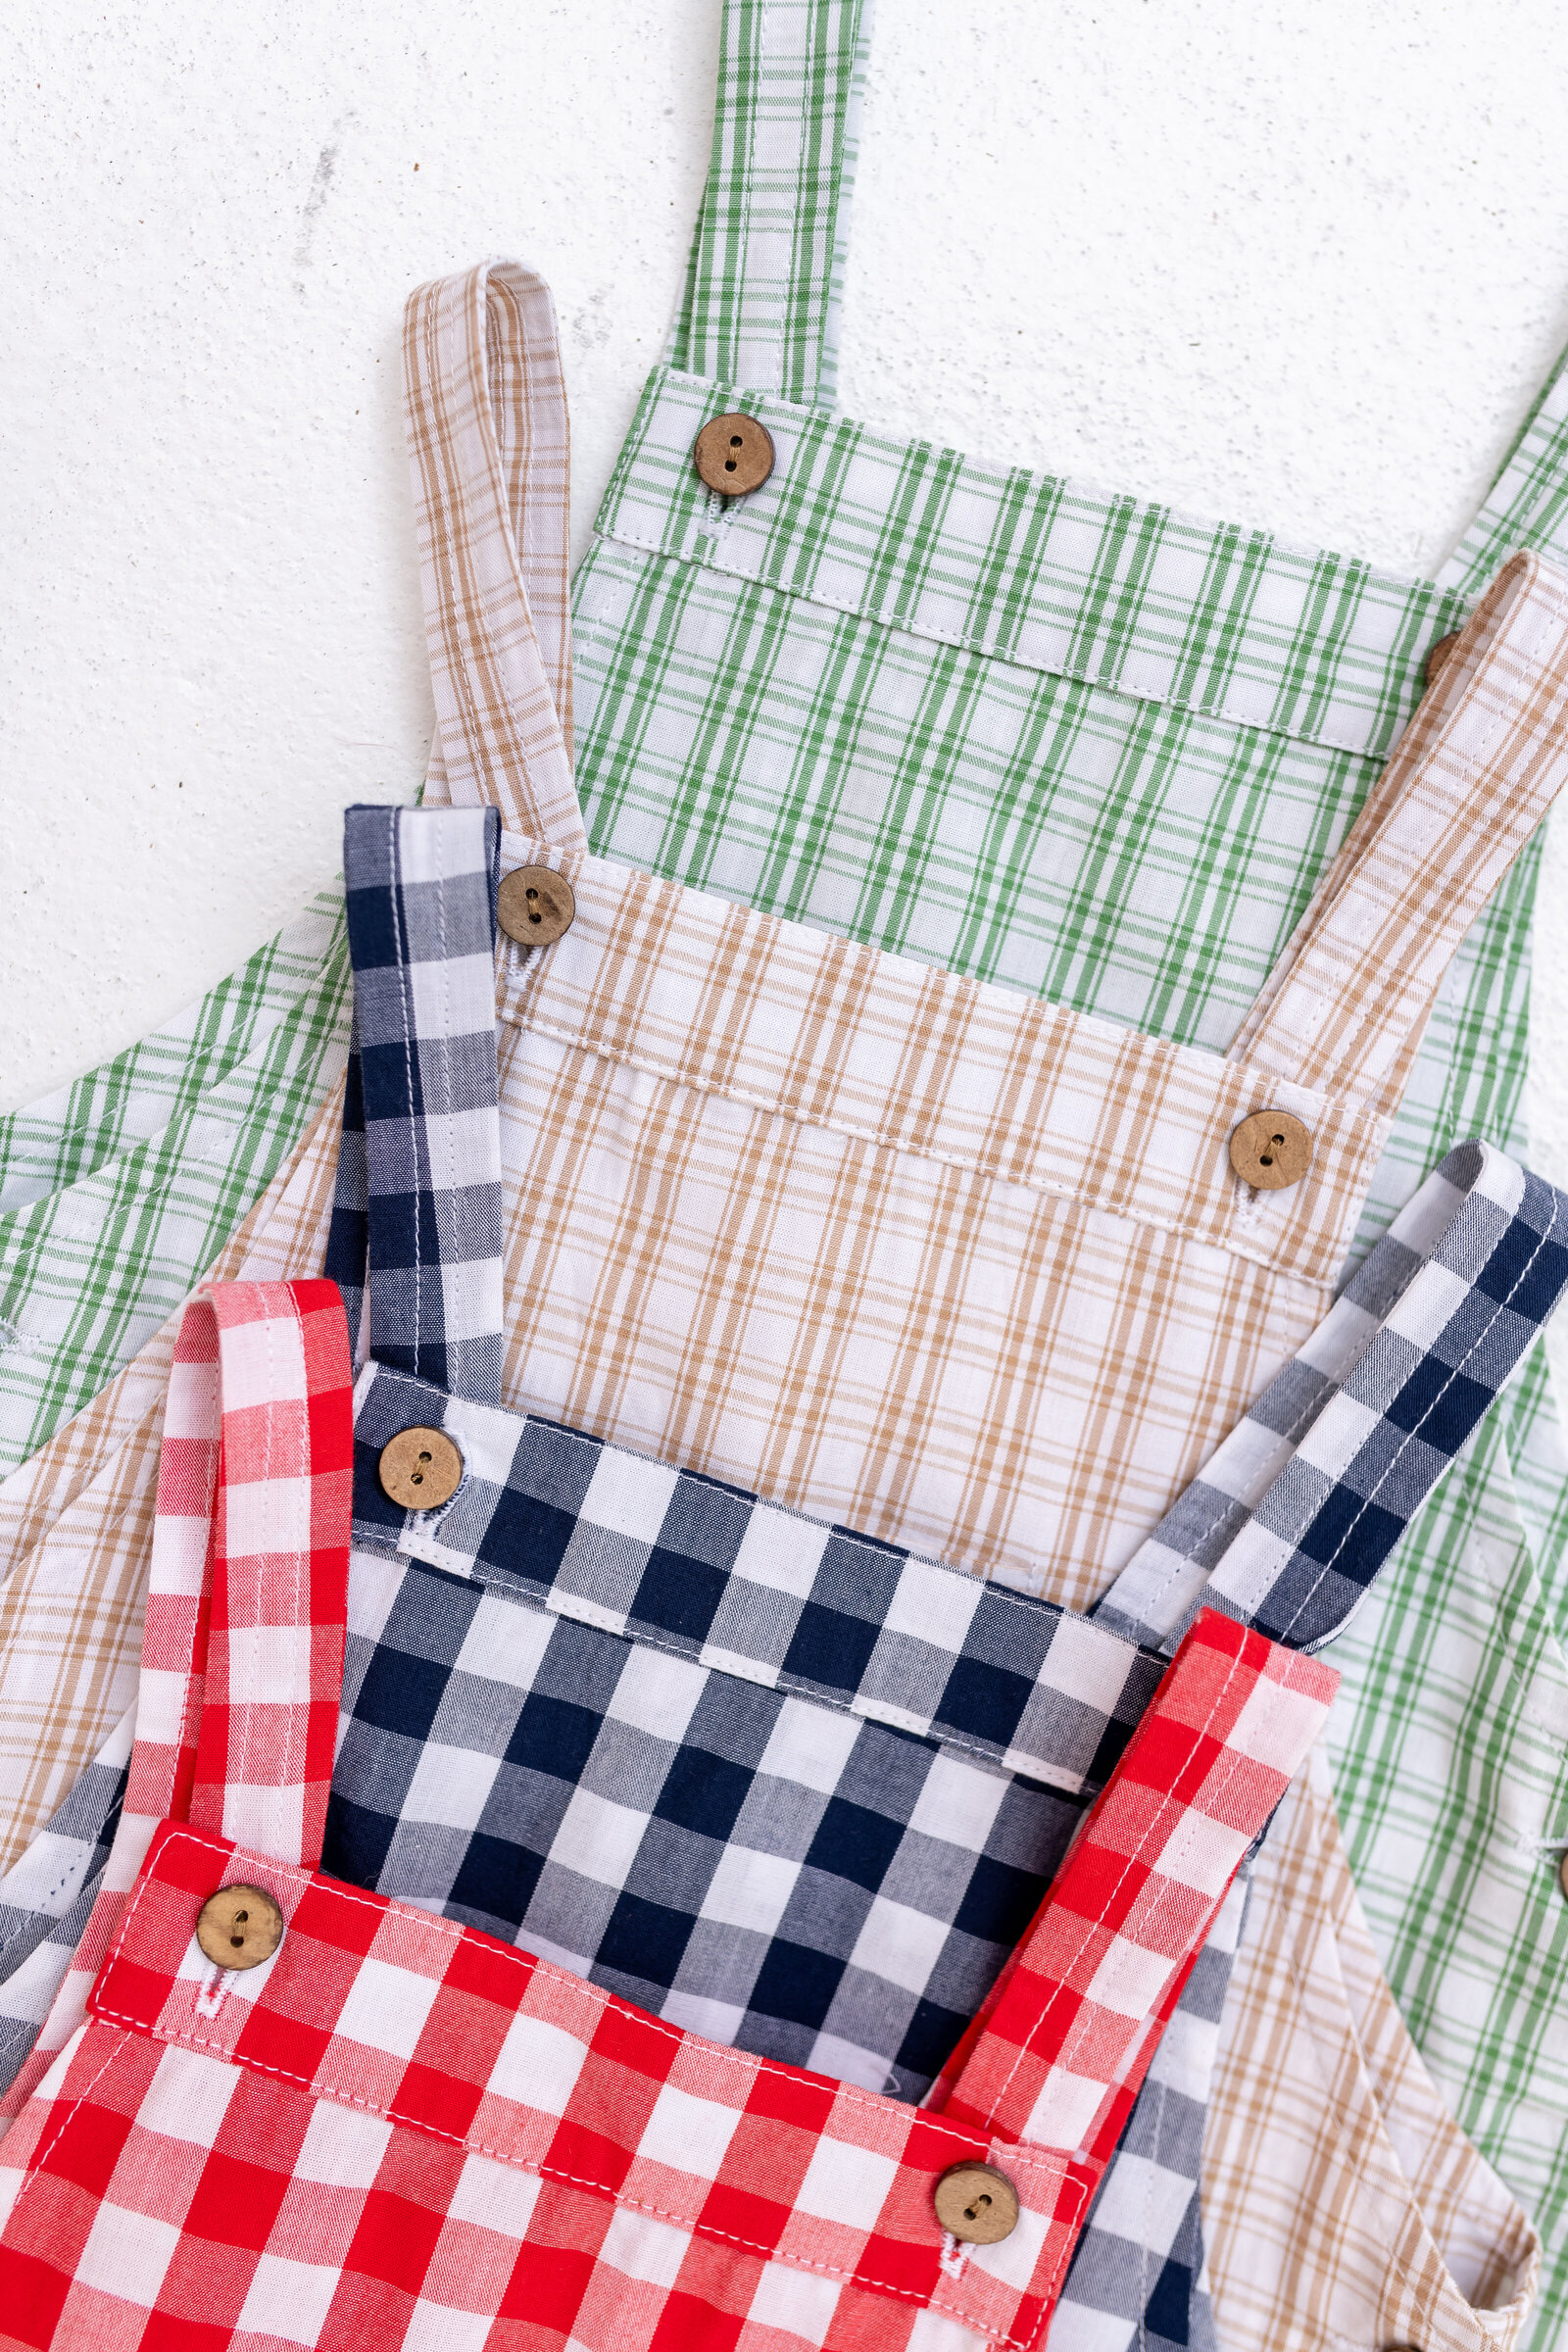 Plaid boys' clothing